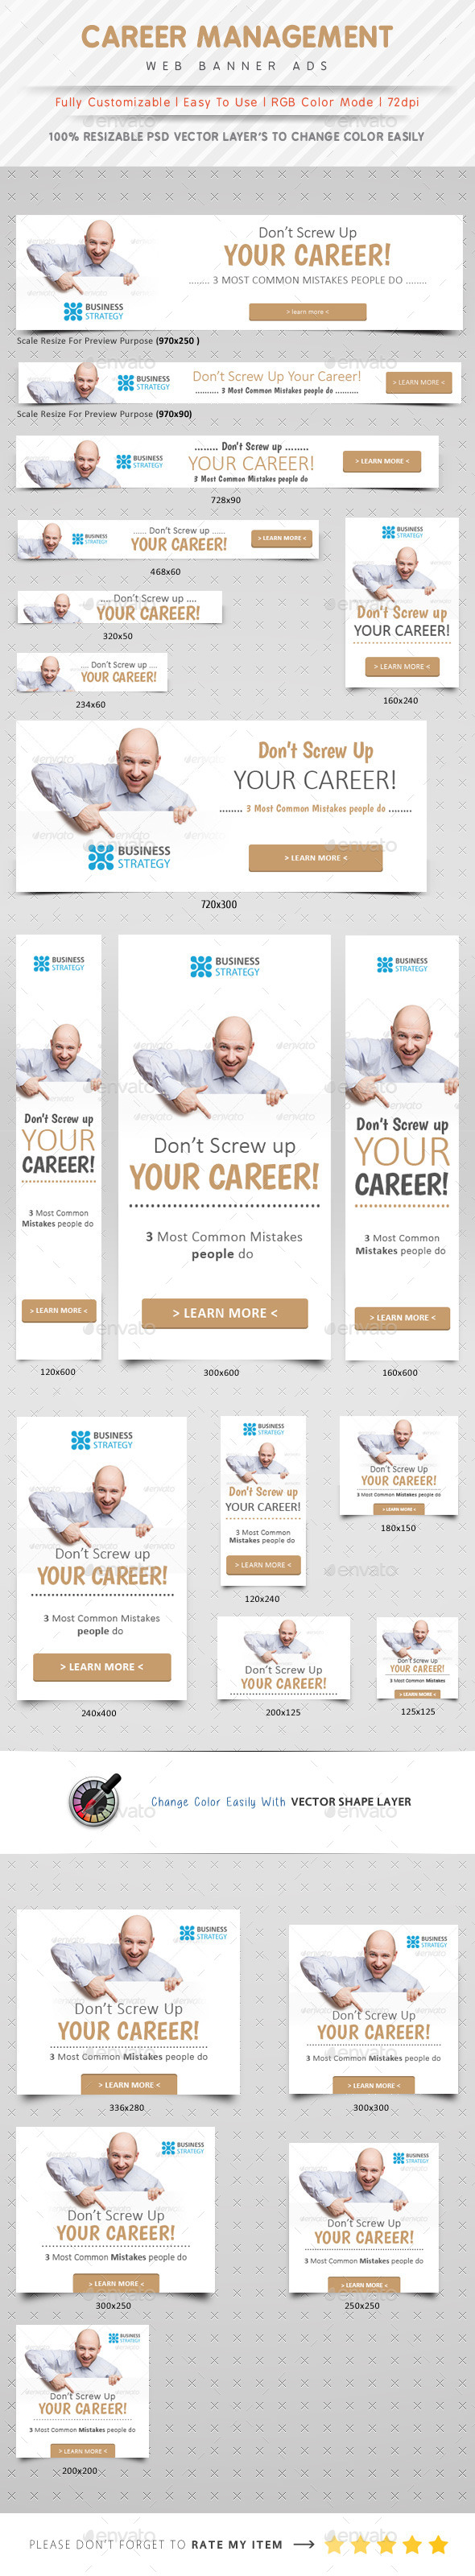 Career Management Web Banner Ads - Banners & Ads Web Elements